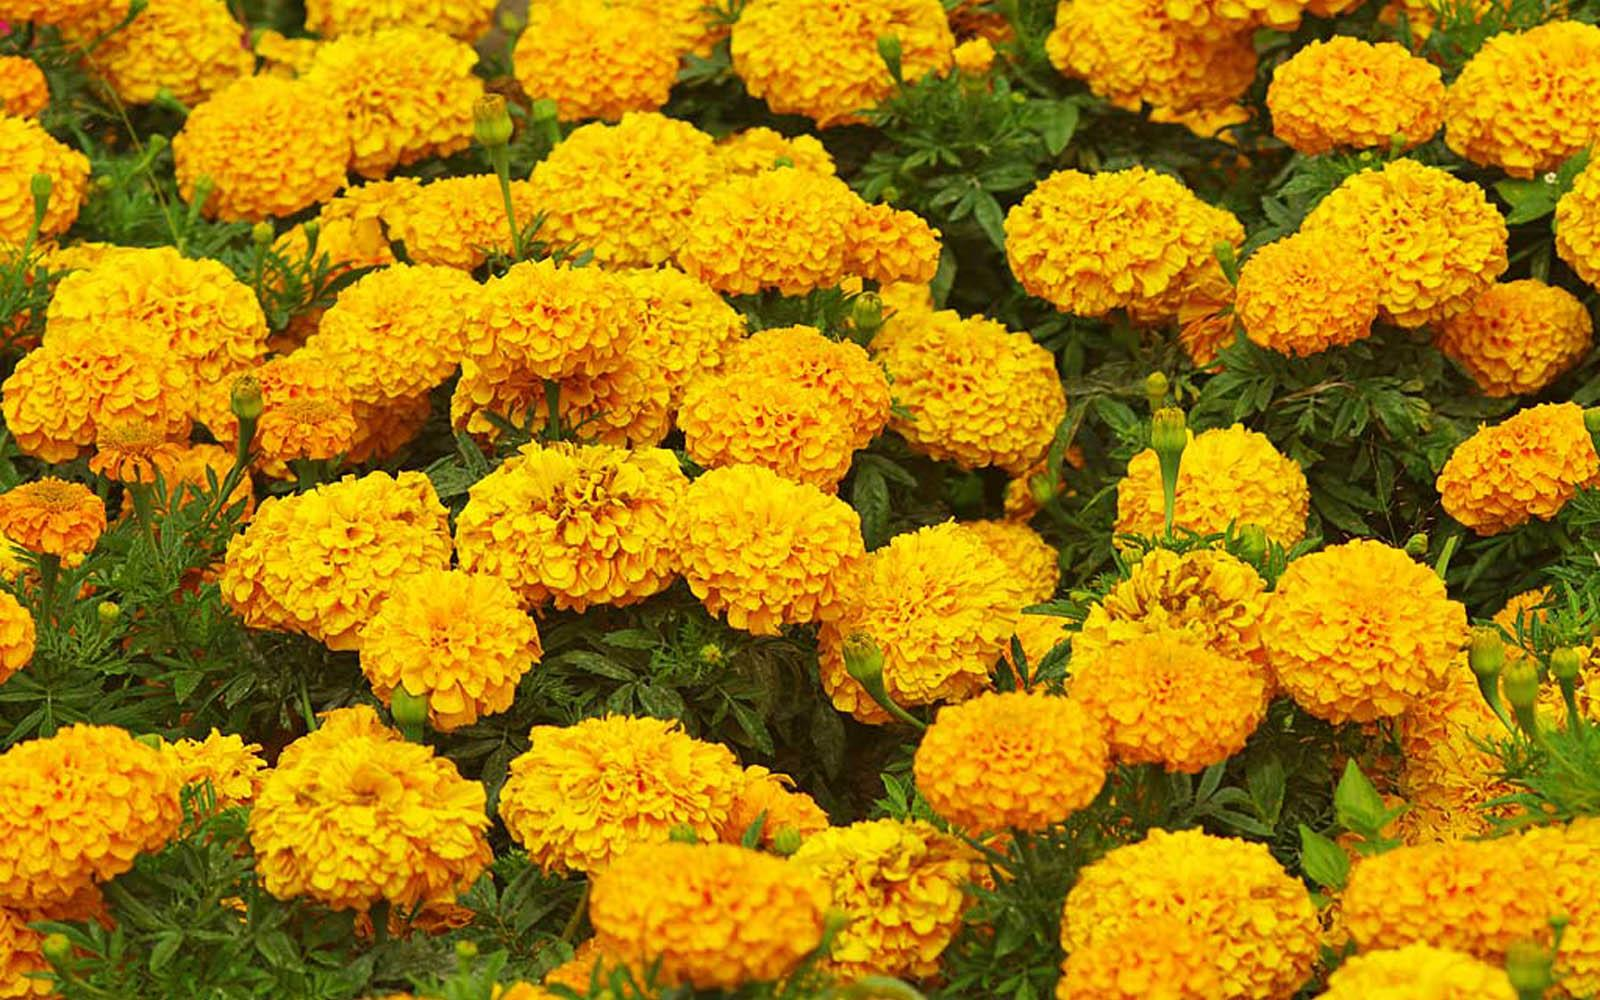 Marigold Flower Garden Wallpapers Hd Free For Desktop Hd Wallpaper